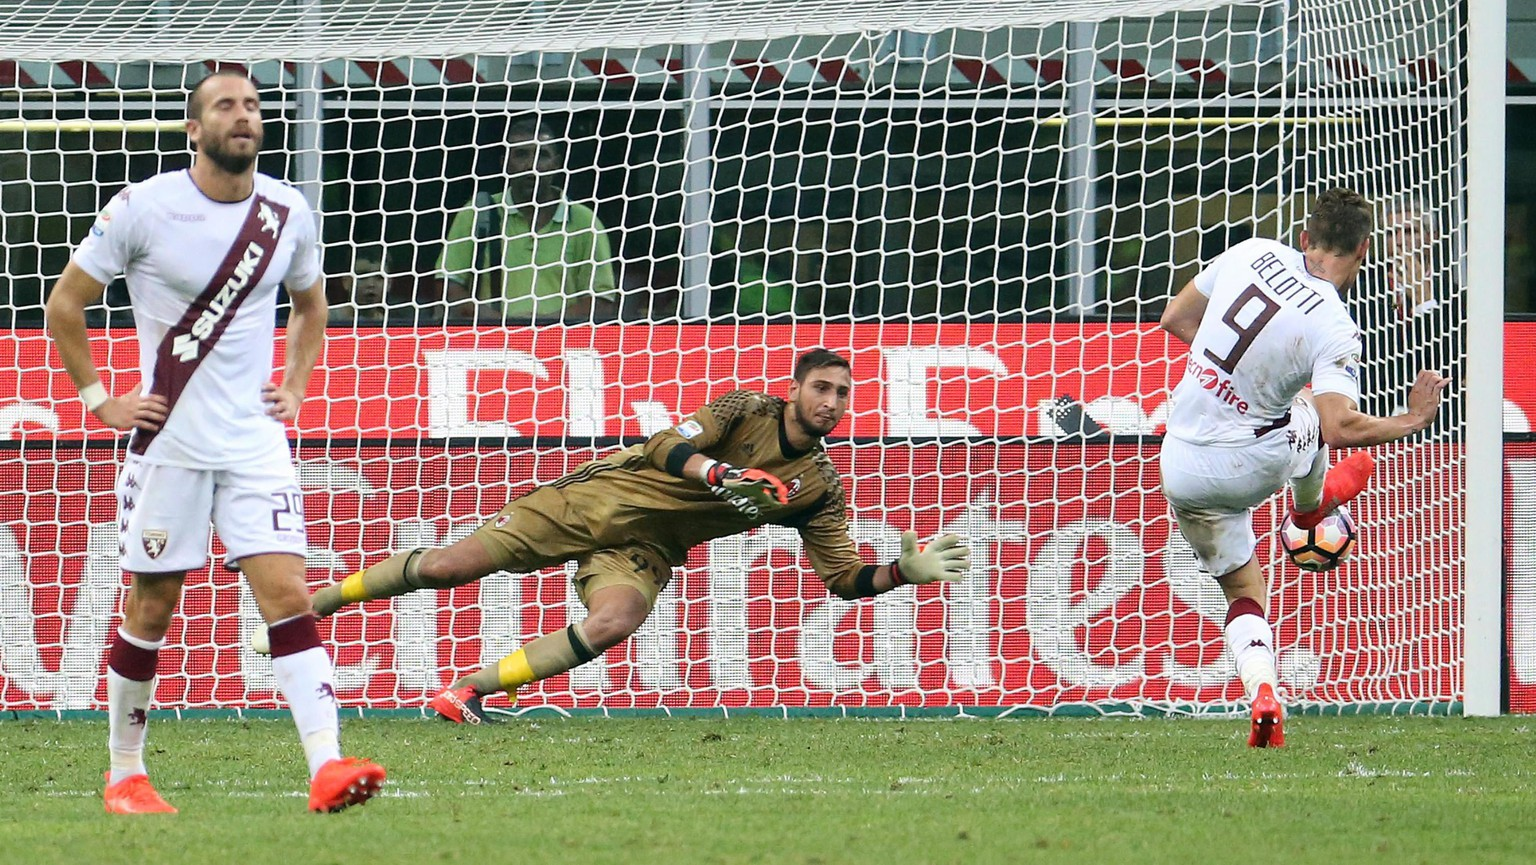 epa05505421 Milan's goalkeeper Gianluigi Donnarumma saves the penalty kicked by Torino's Andrea Belotti (R) during the Italian Serie A soccer match AC Milan vs Torino FC at Giuseppe Meazza stadium in Milan, Italy, 21 August 2016.  EPA/MATTEO BAZZI